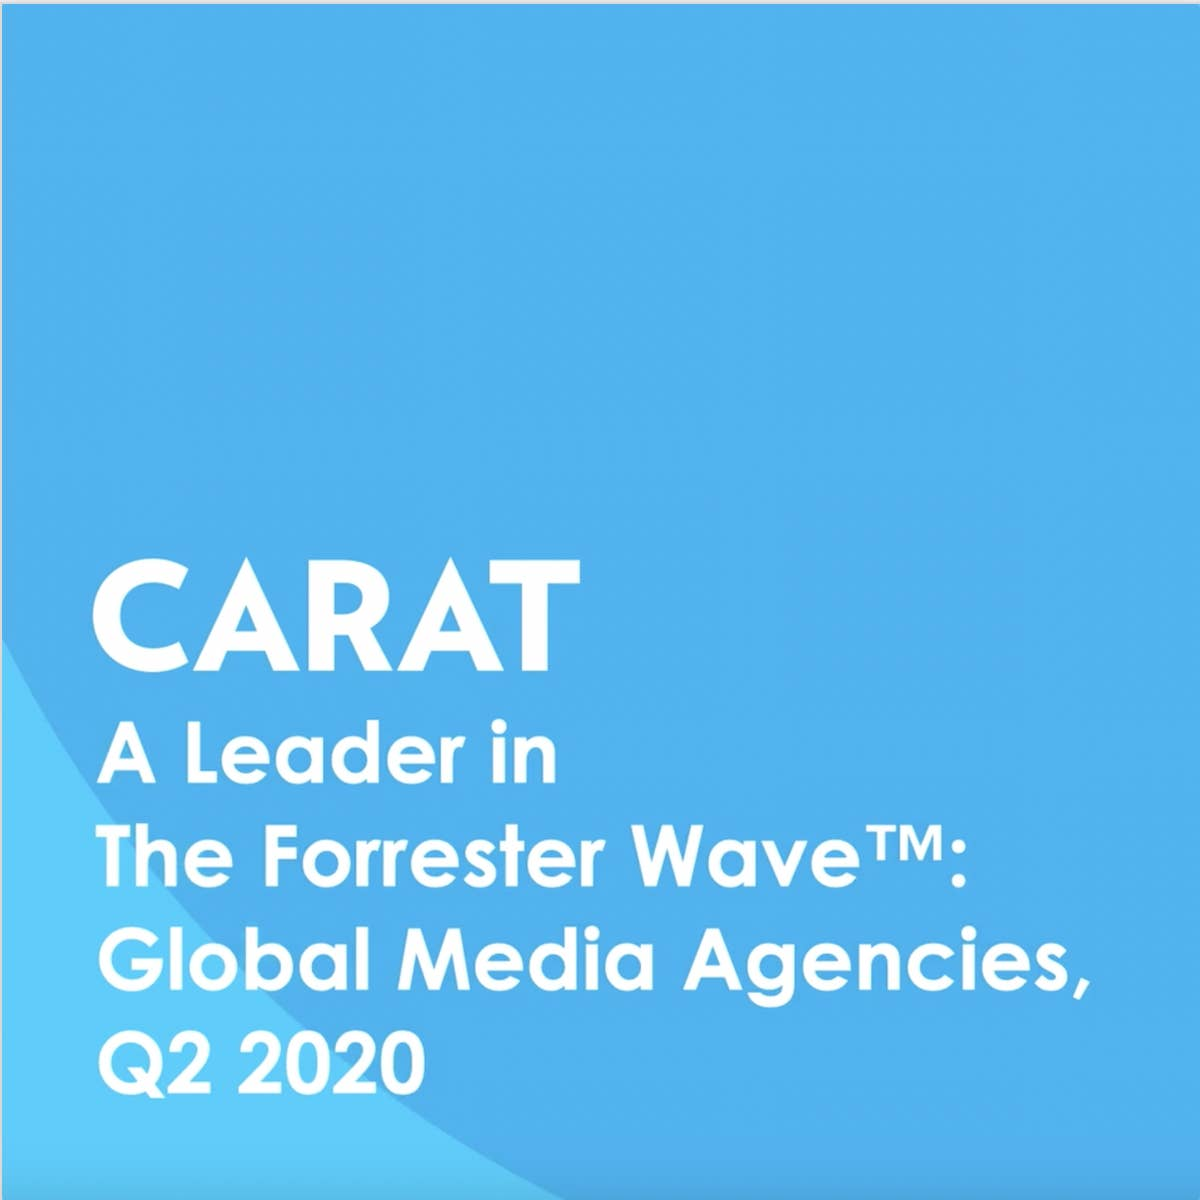 Carat named a leader amongst global media agencies